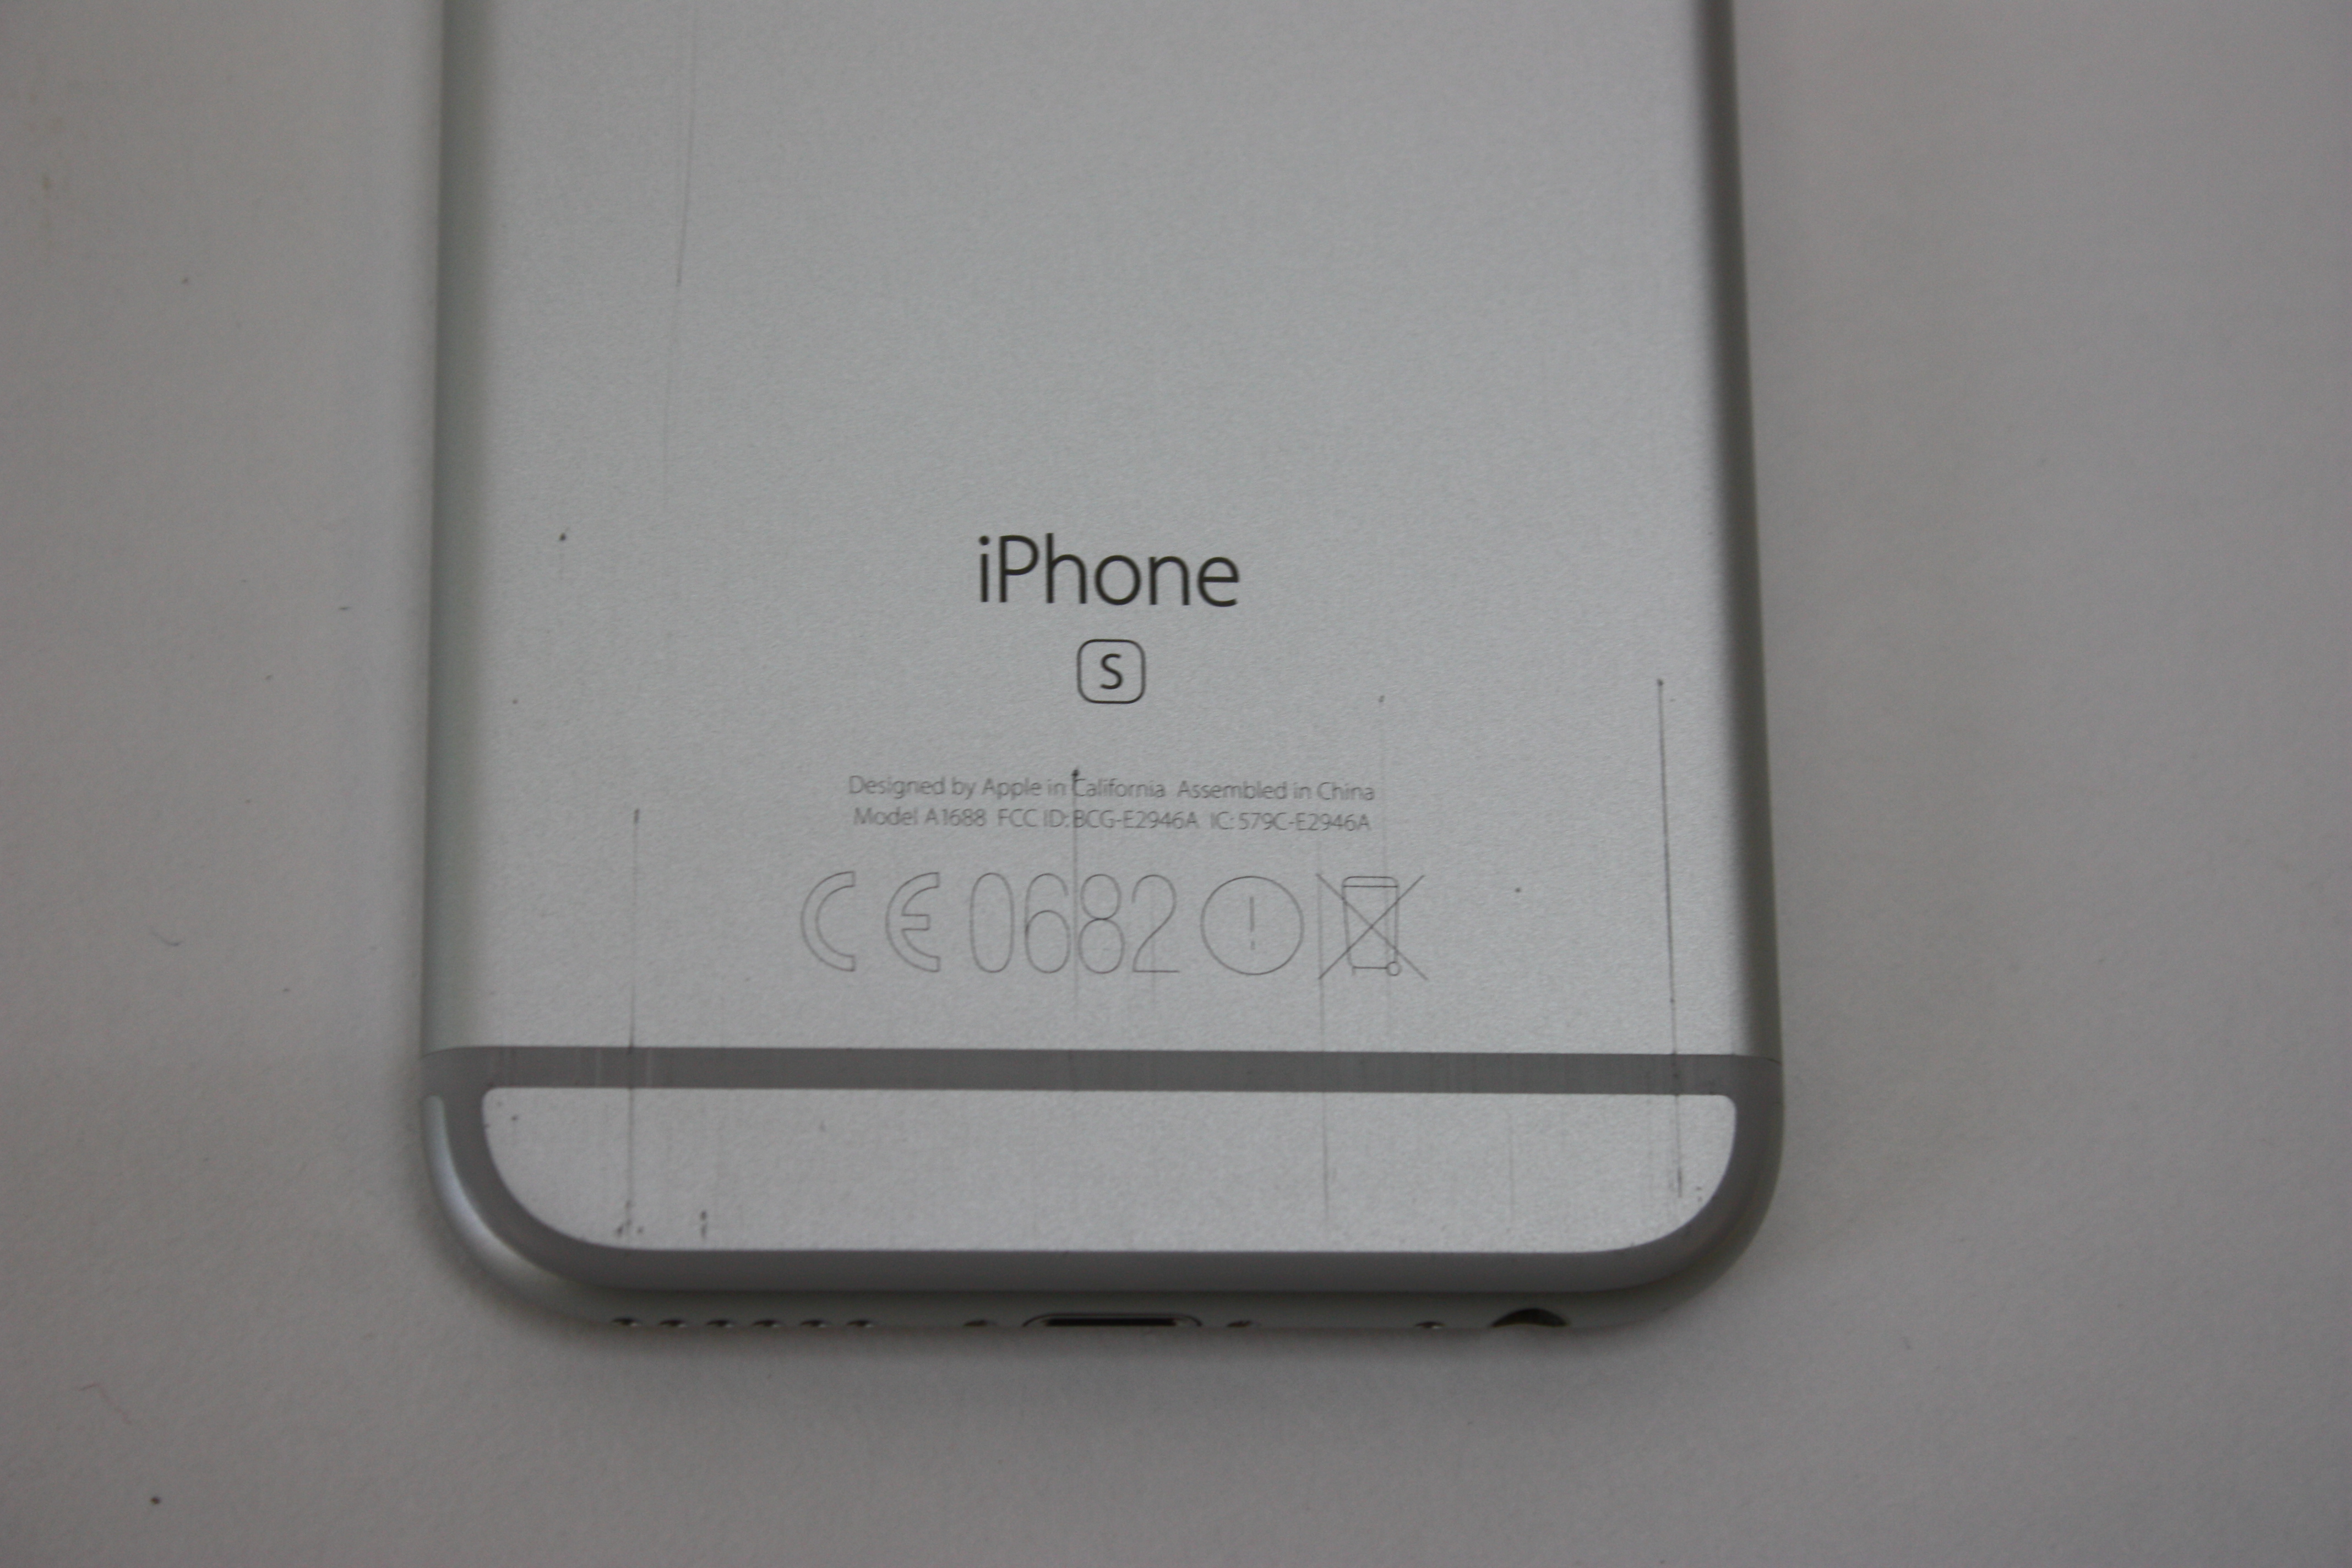 iPhone 6S, 16 GB, Silver, image 4